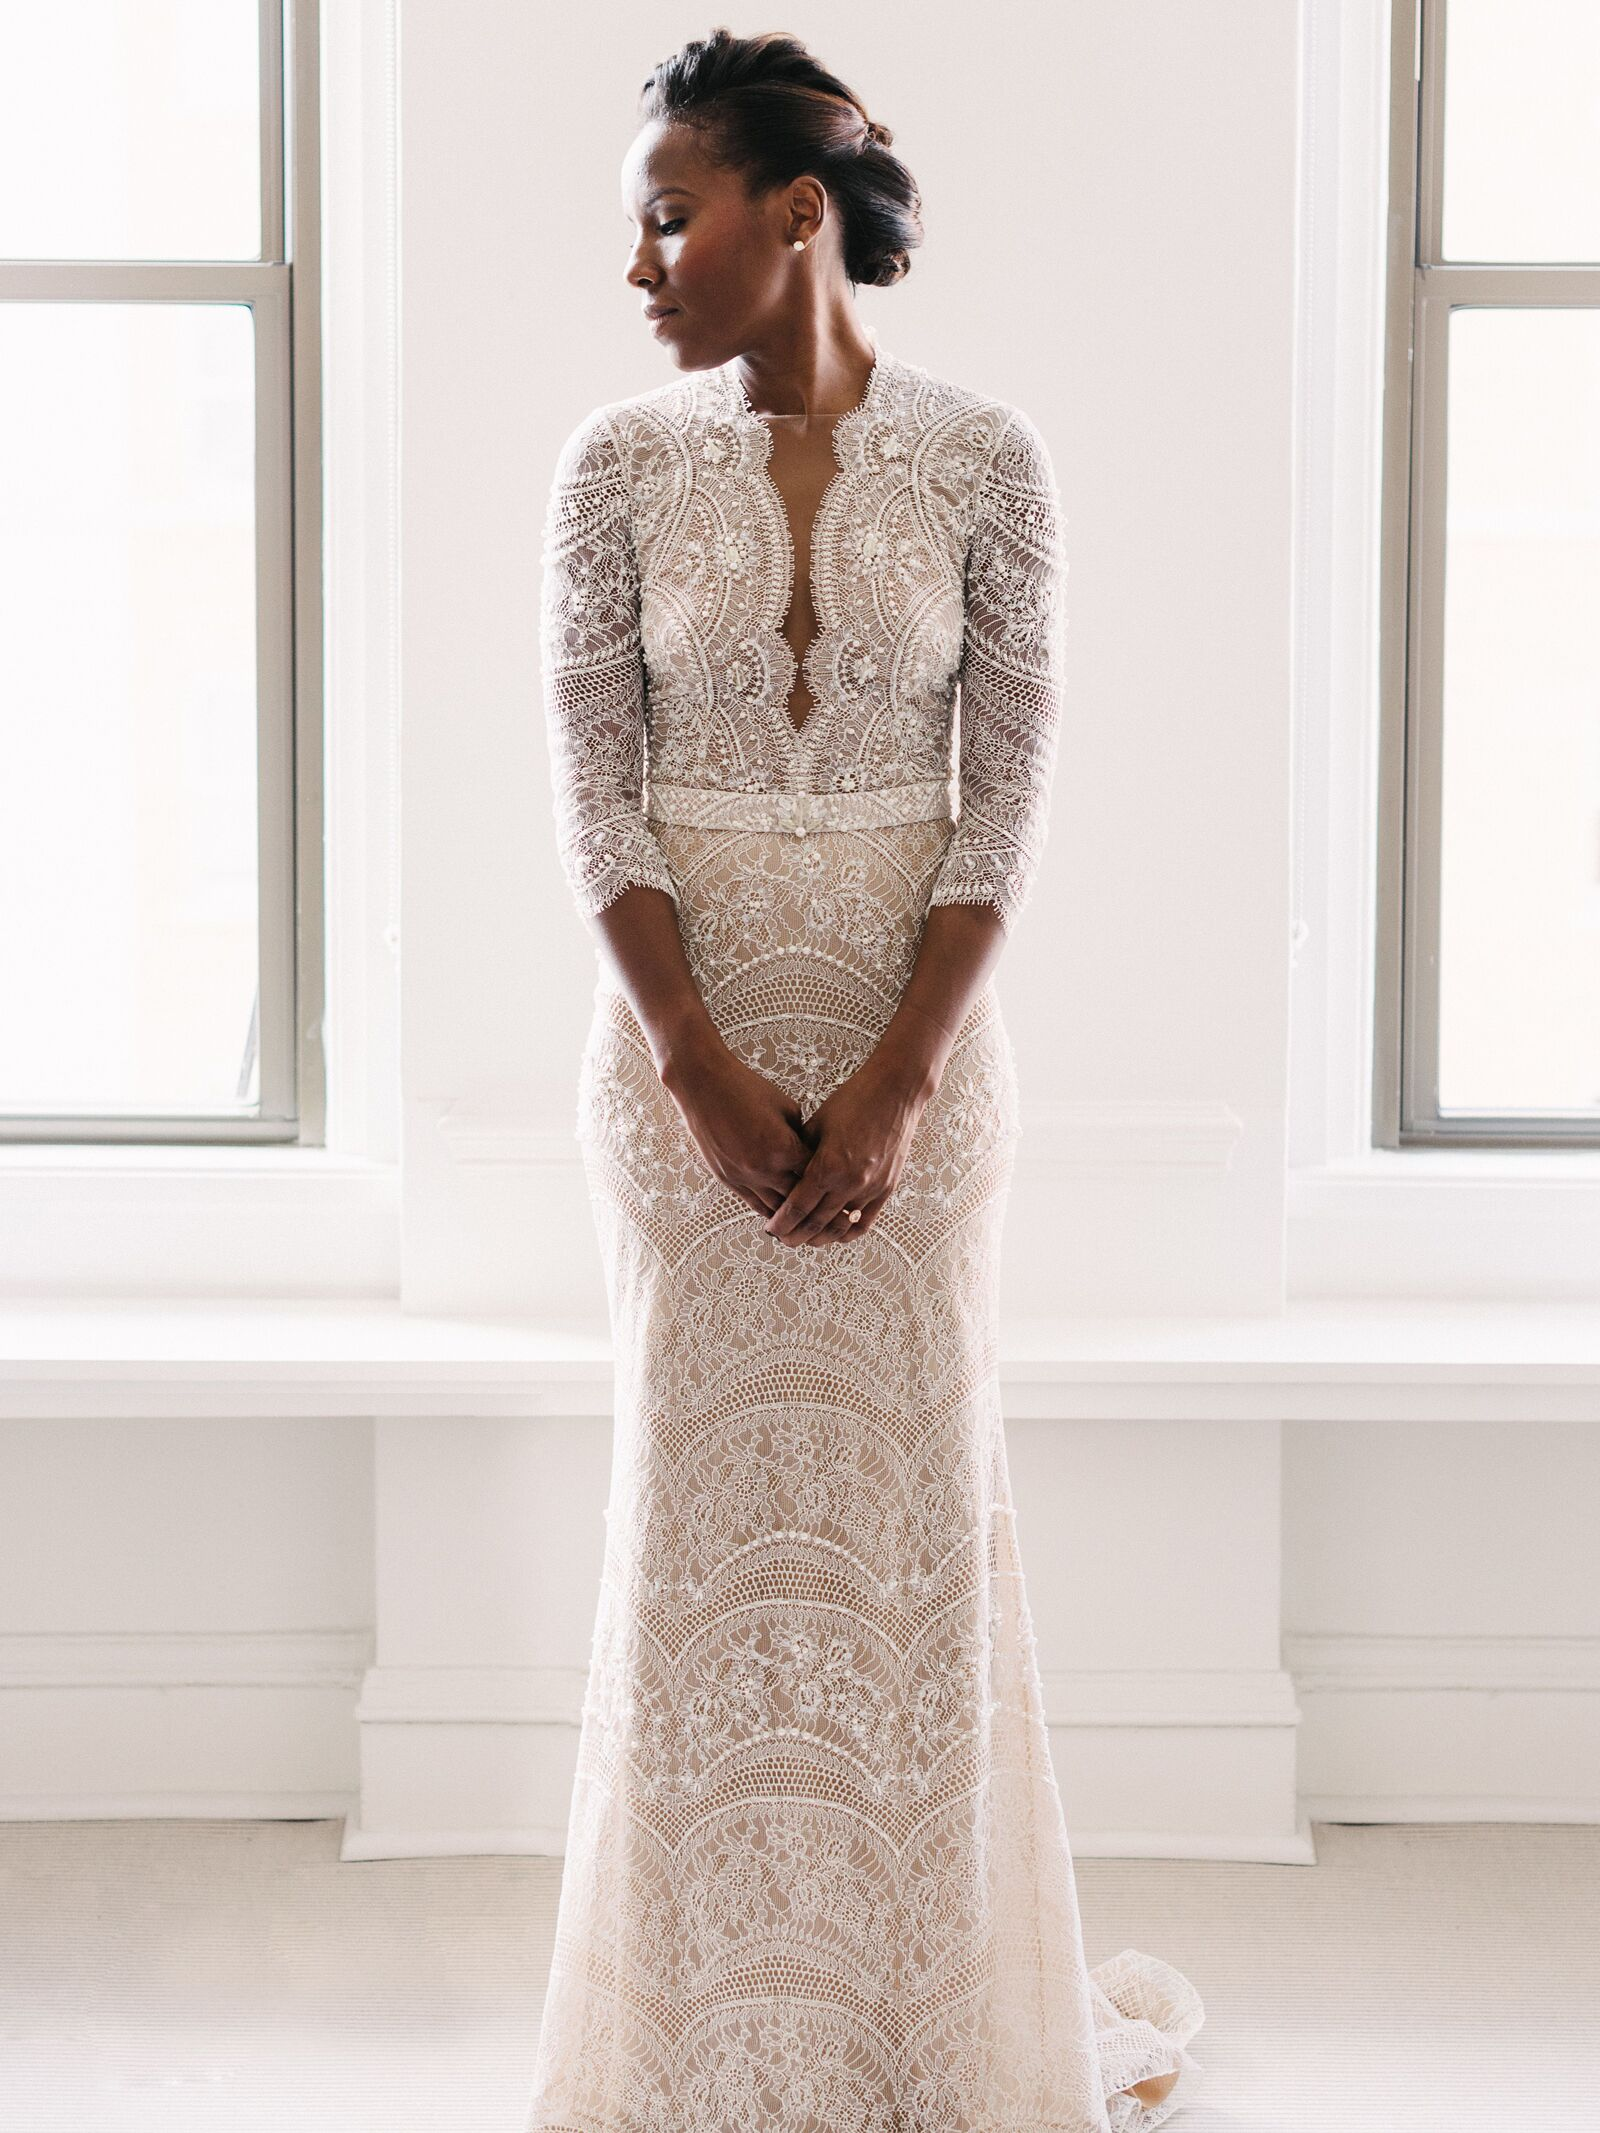 cf48c3c4aa4e8 28 Winter Wedding Dresses for Every Style